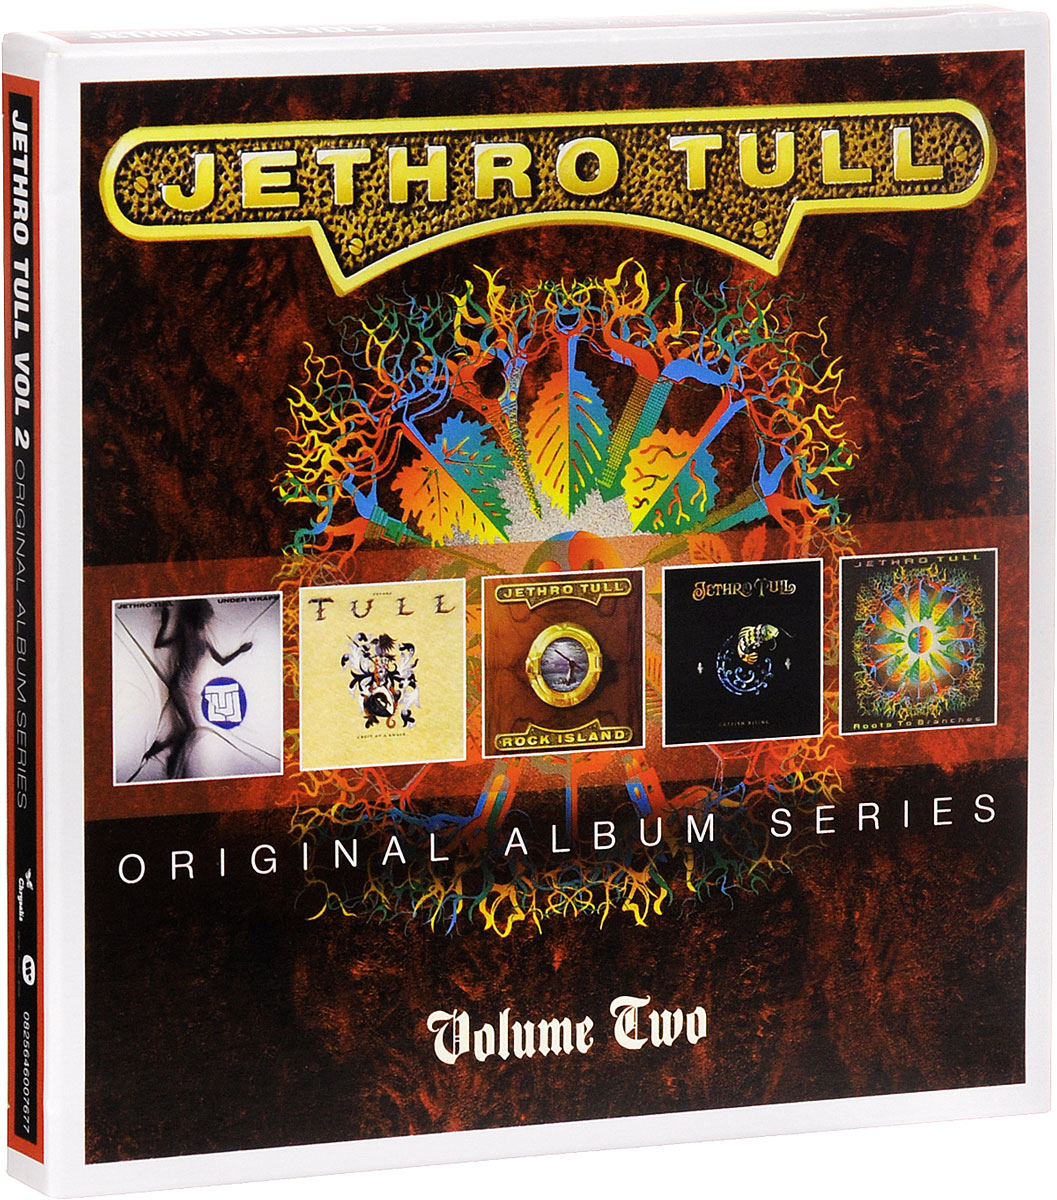 Jethro Tull Jethro Tull. Original Album Series. Vol.2 (5 CD) swiss kubik шкатулка для часов swiss kubik sk04 cv003 wp